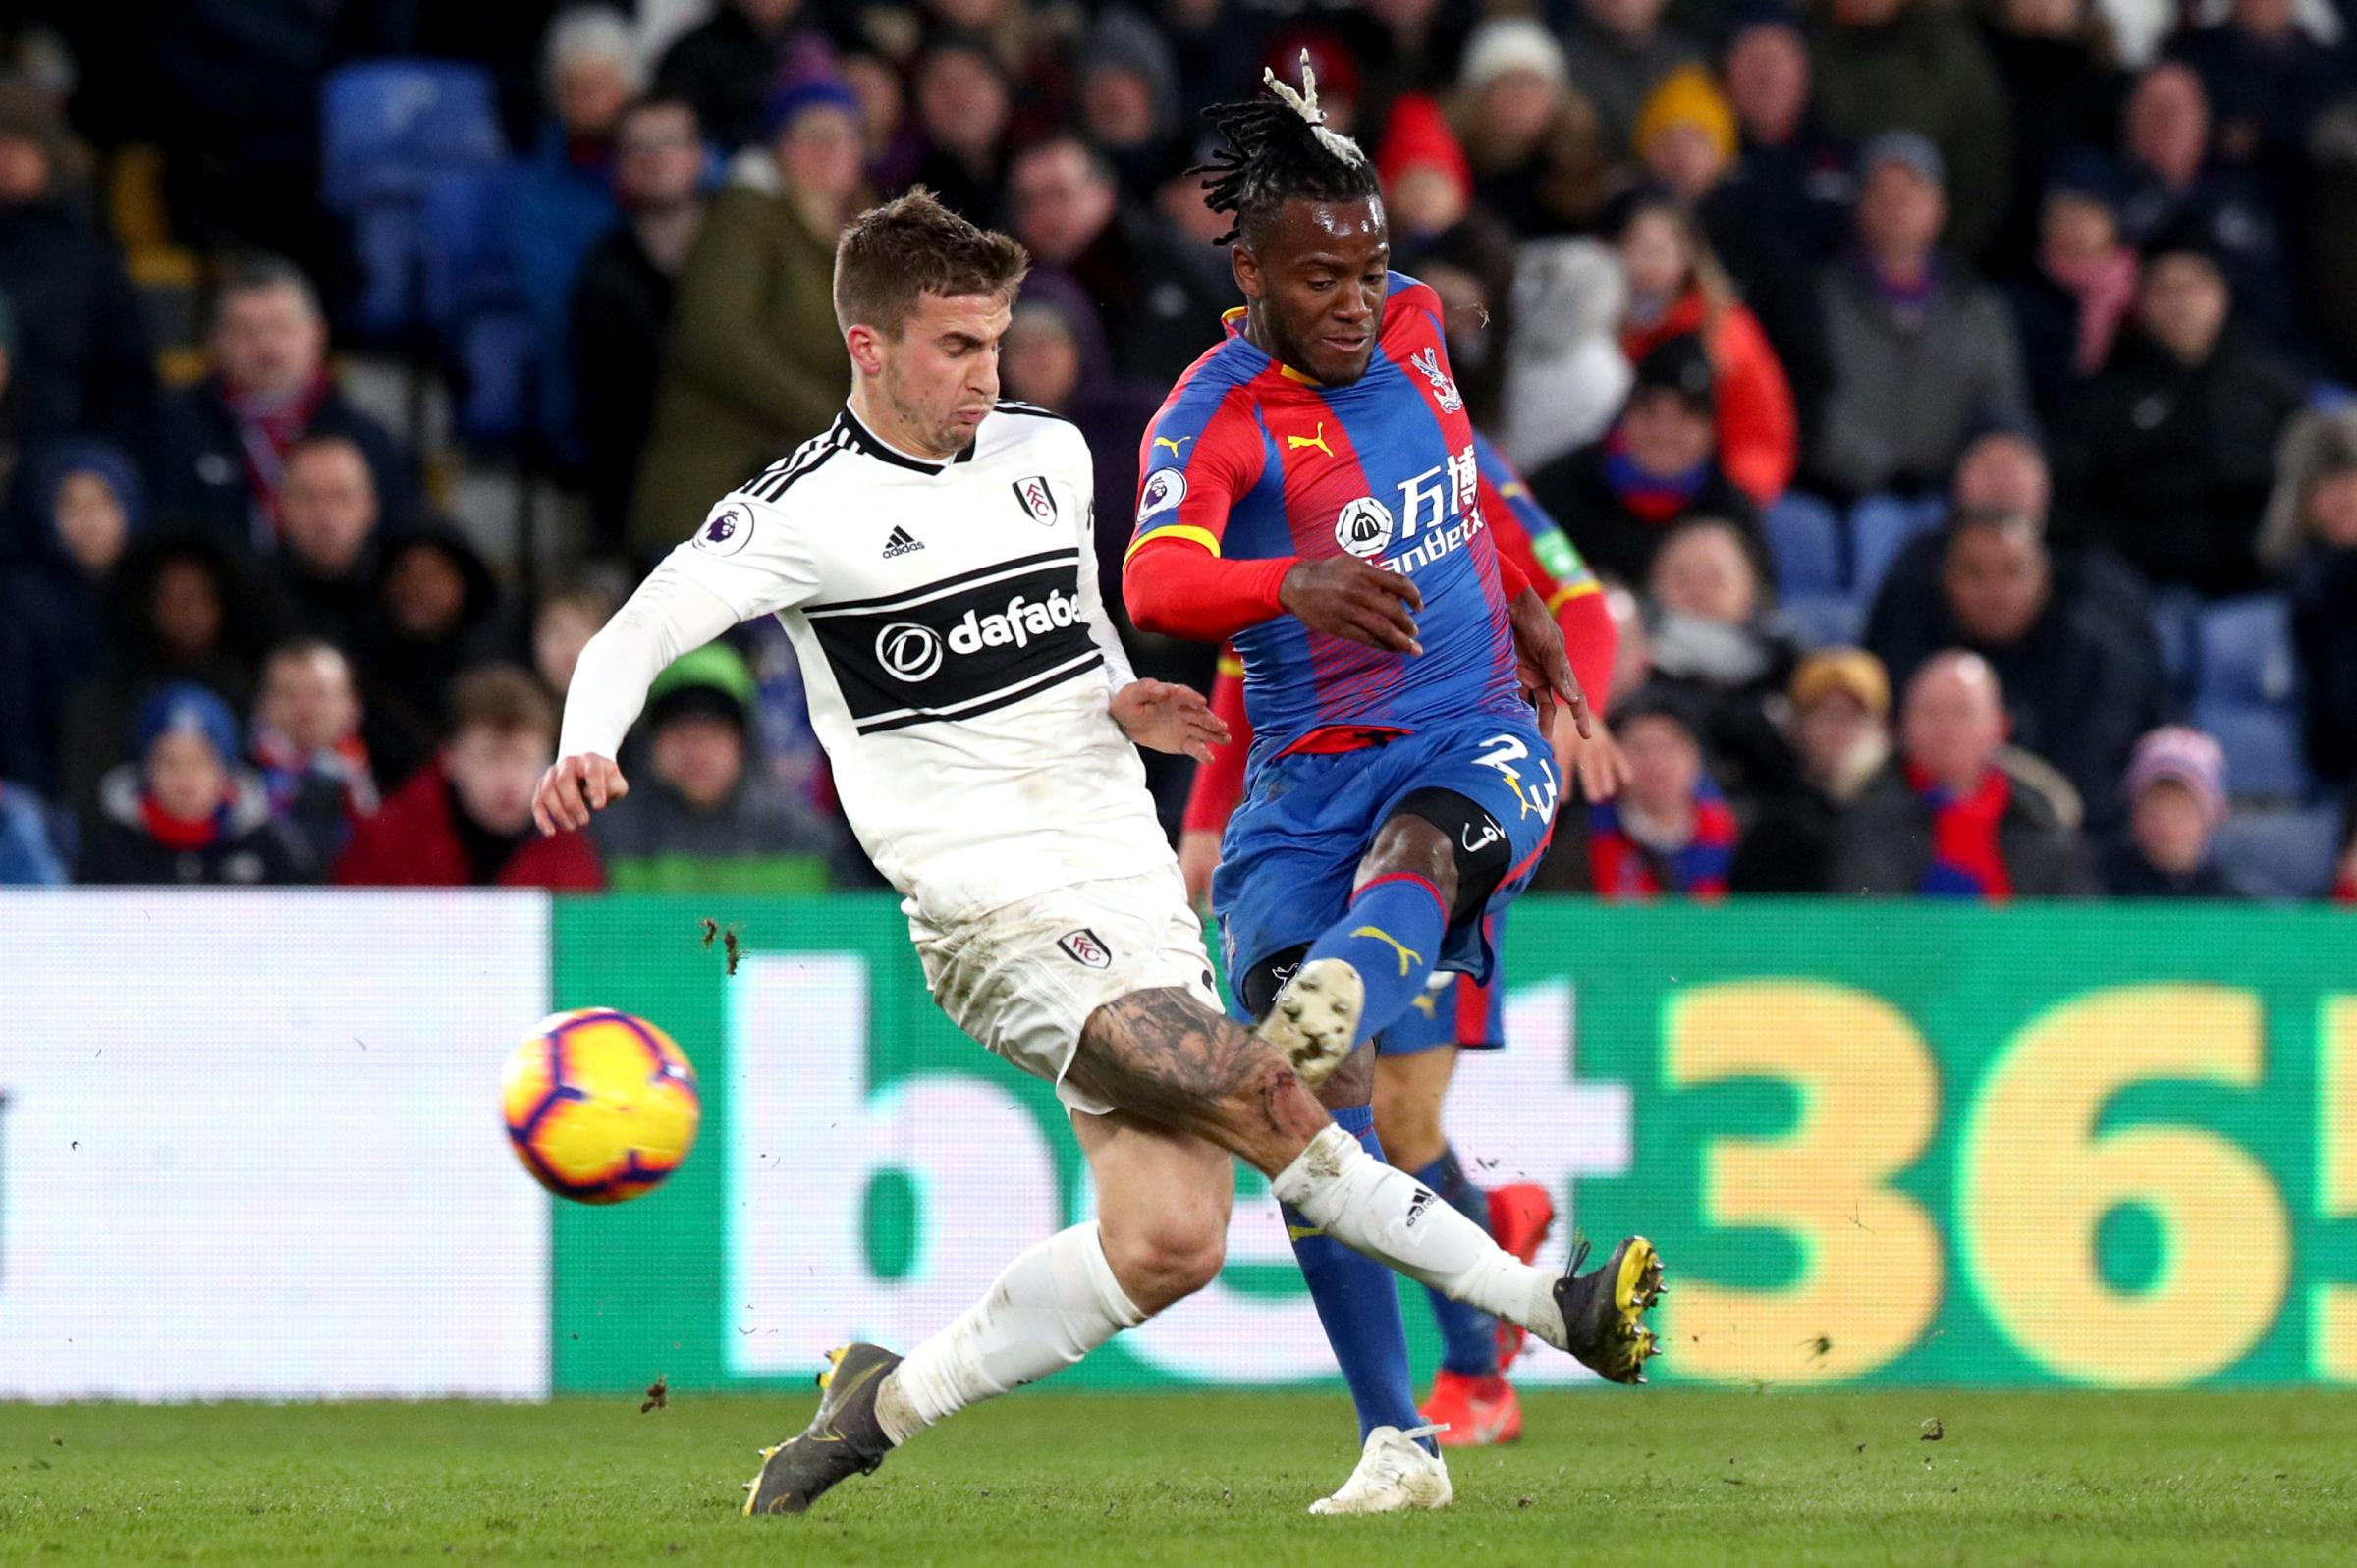 Michy Batshyui gave a taste of what he can bring to Selhurst Park. Credit: PA